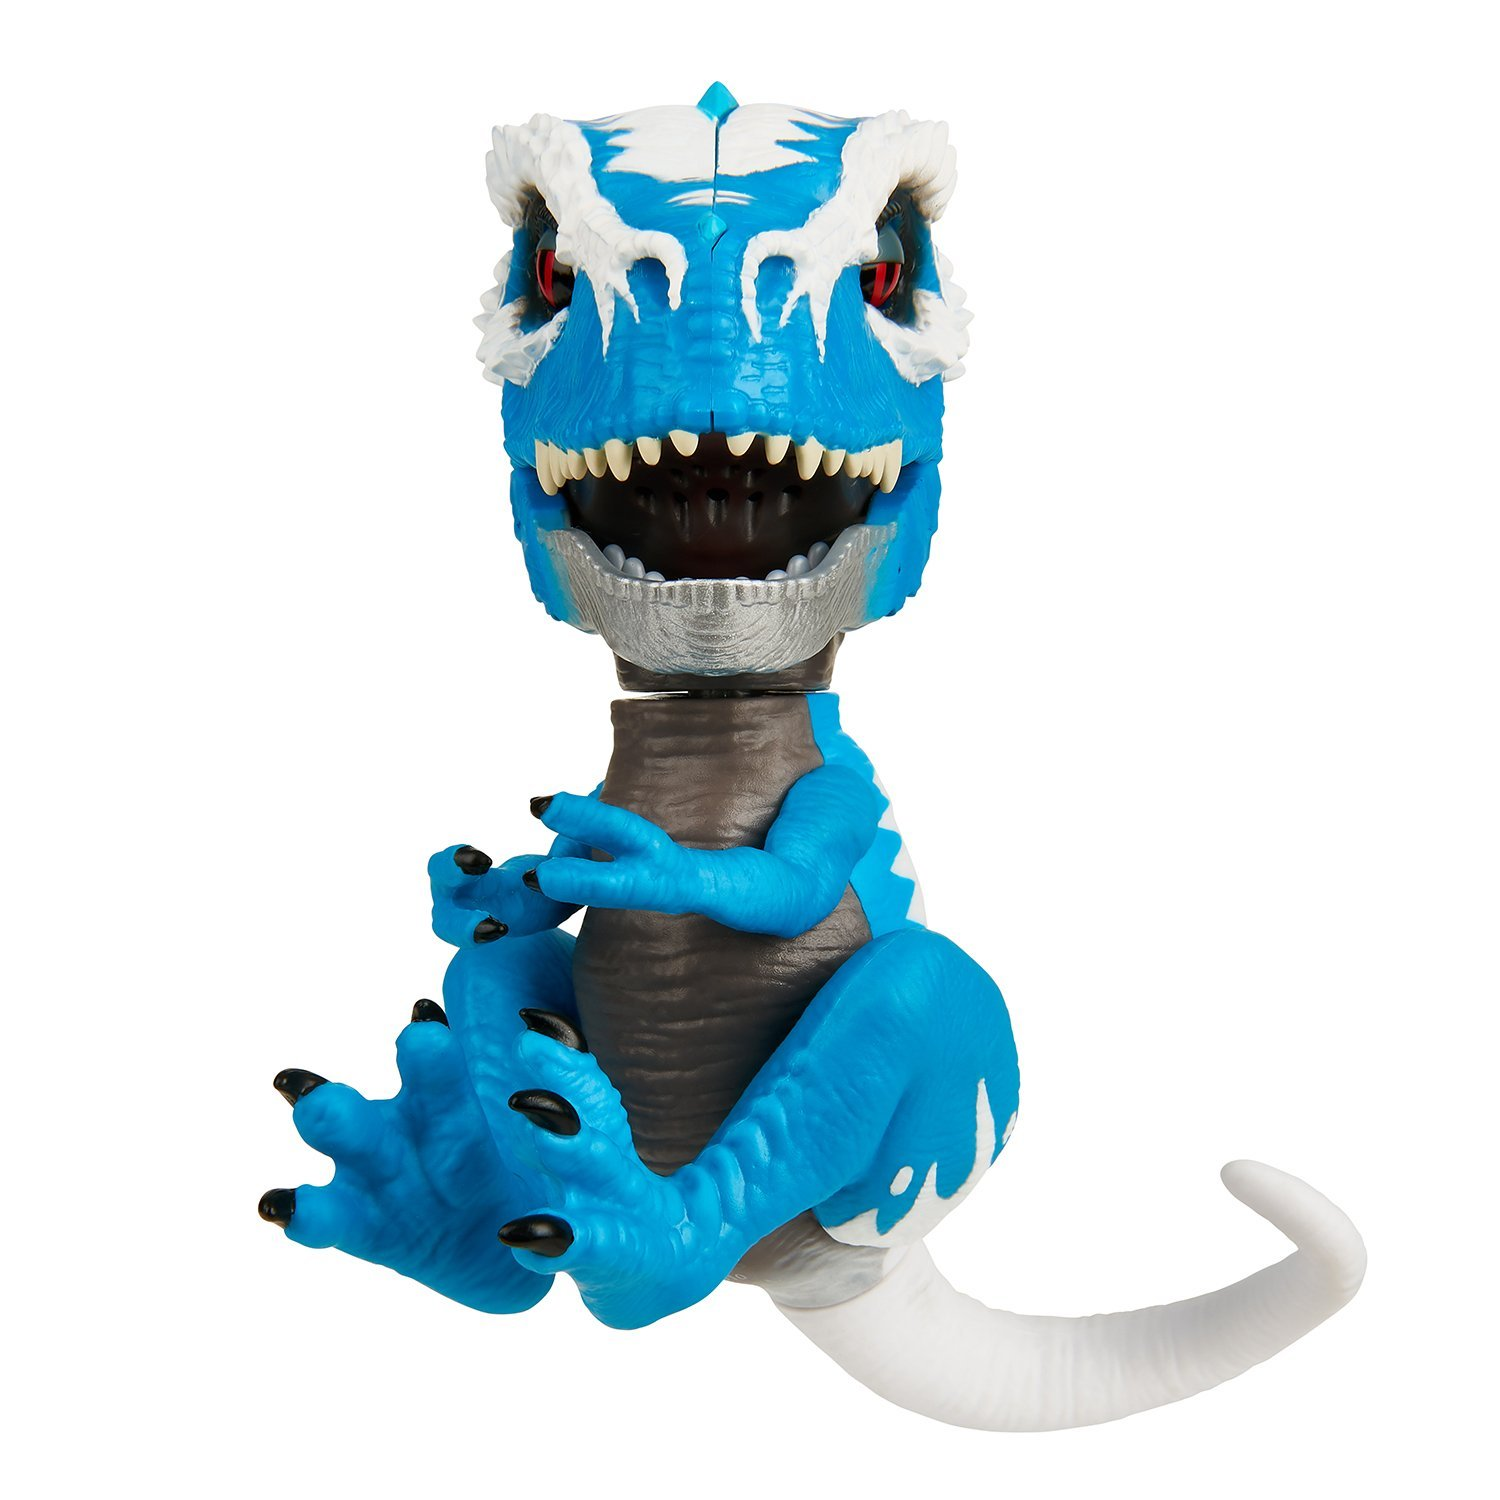 WowWee Untamed T-Rex by Fingerlings Ironjaw (Blue) -Interactive Collectible Dinosaur by WowWee (Image #4)